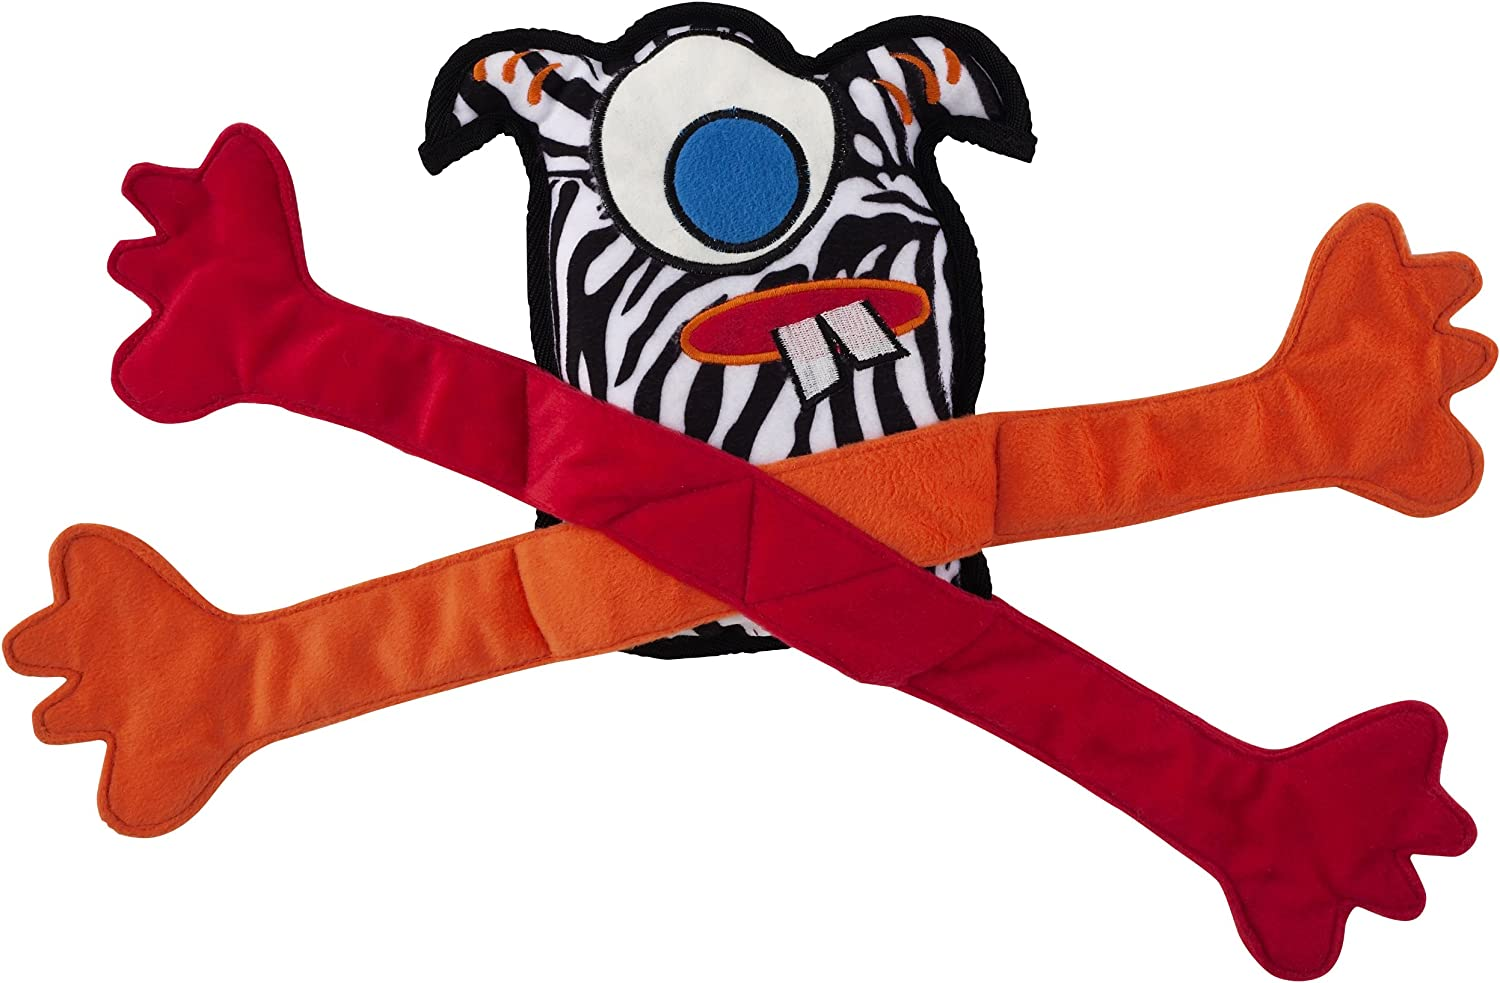 Doggles Krazy Creature Zebra Cyclops Toy for Dogs